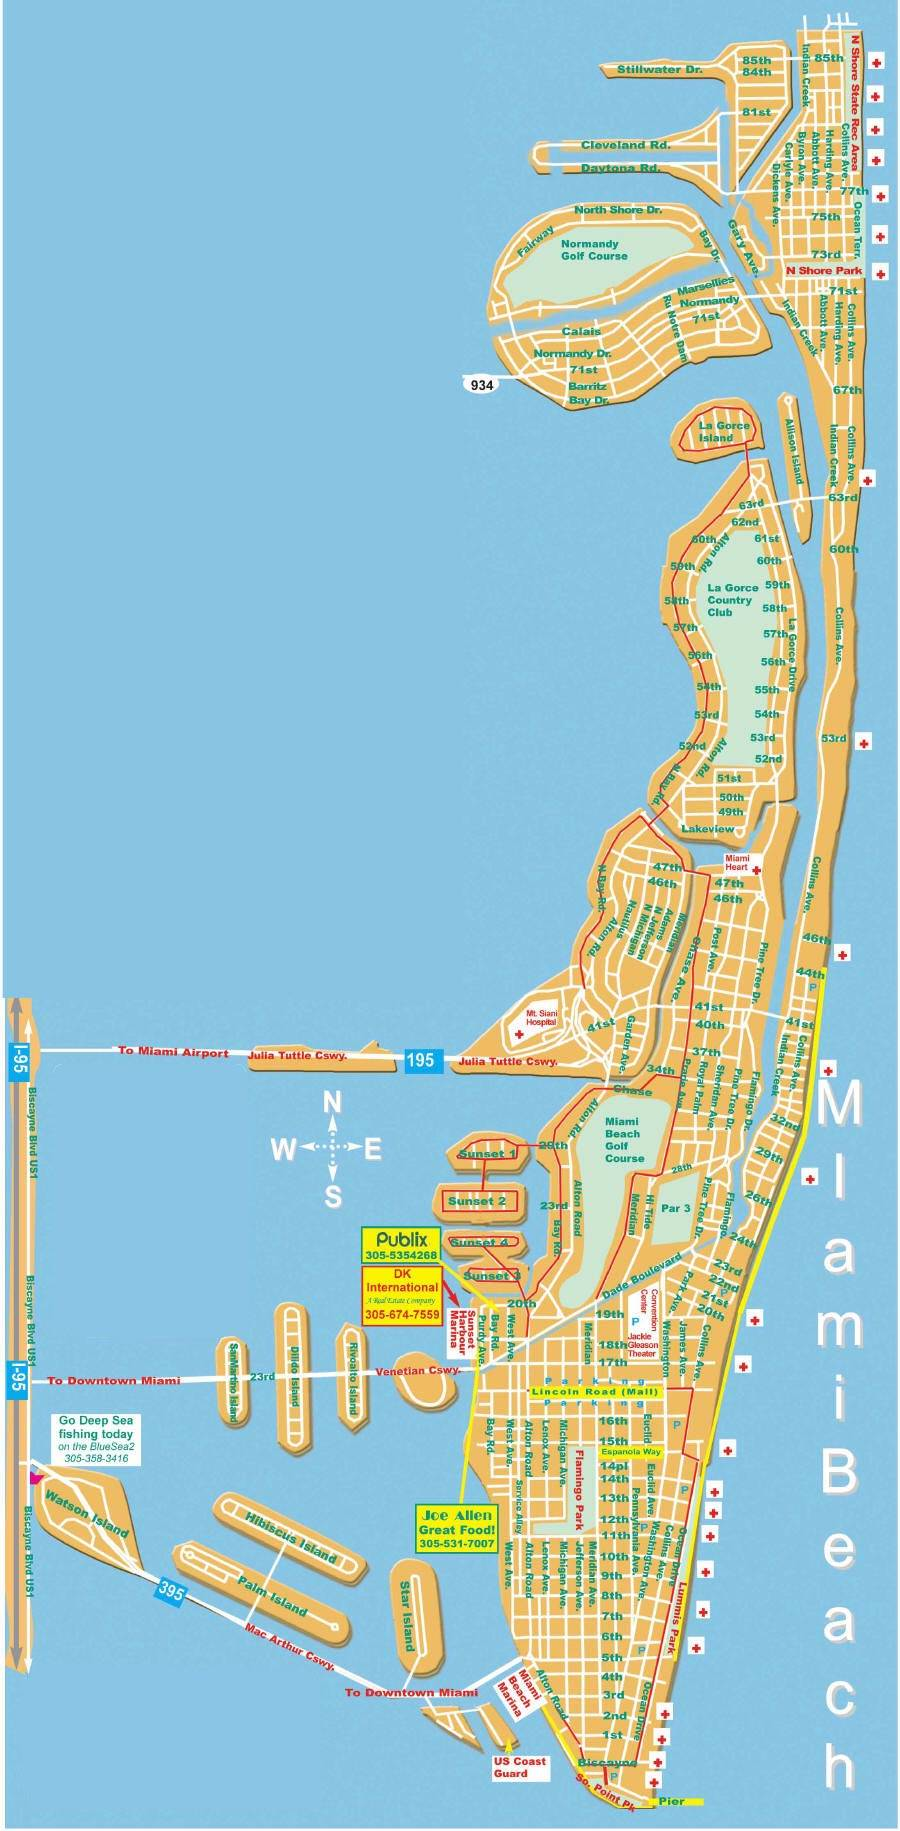 large miami beach maps for free download | high-resolution